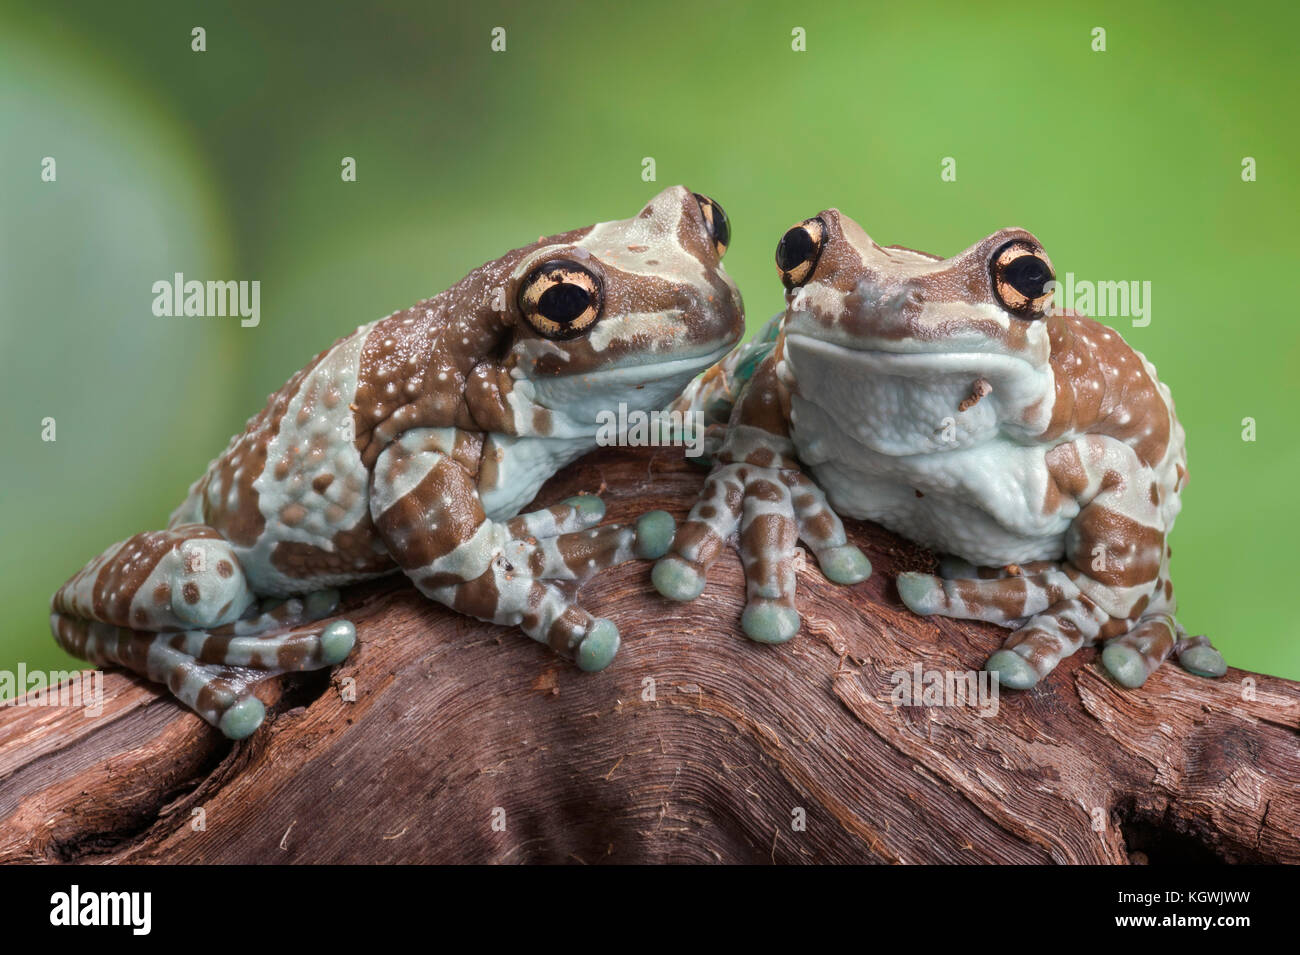 A pair of Amazon Milk Frogs sitting on a log. - Stock Image